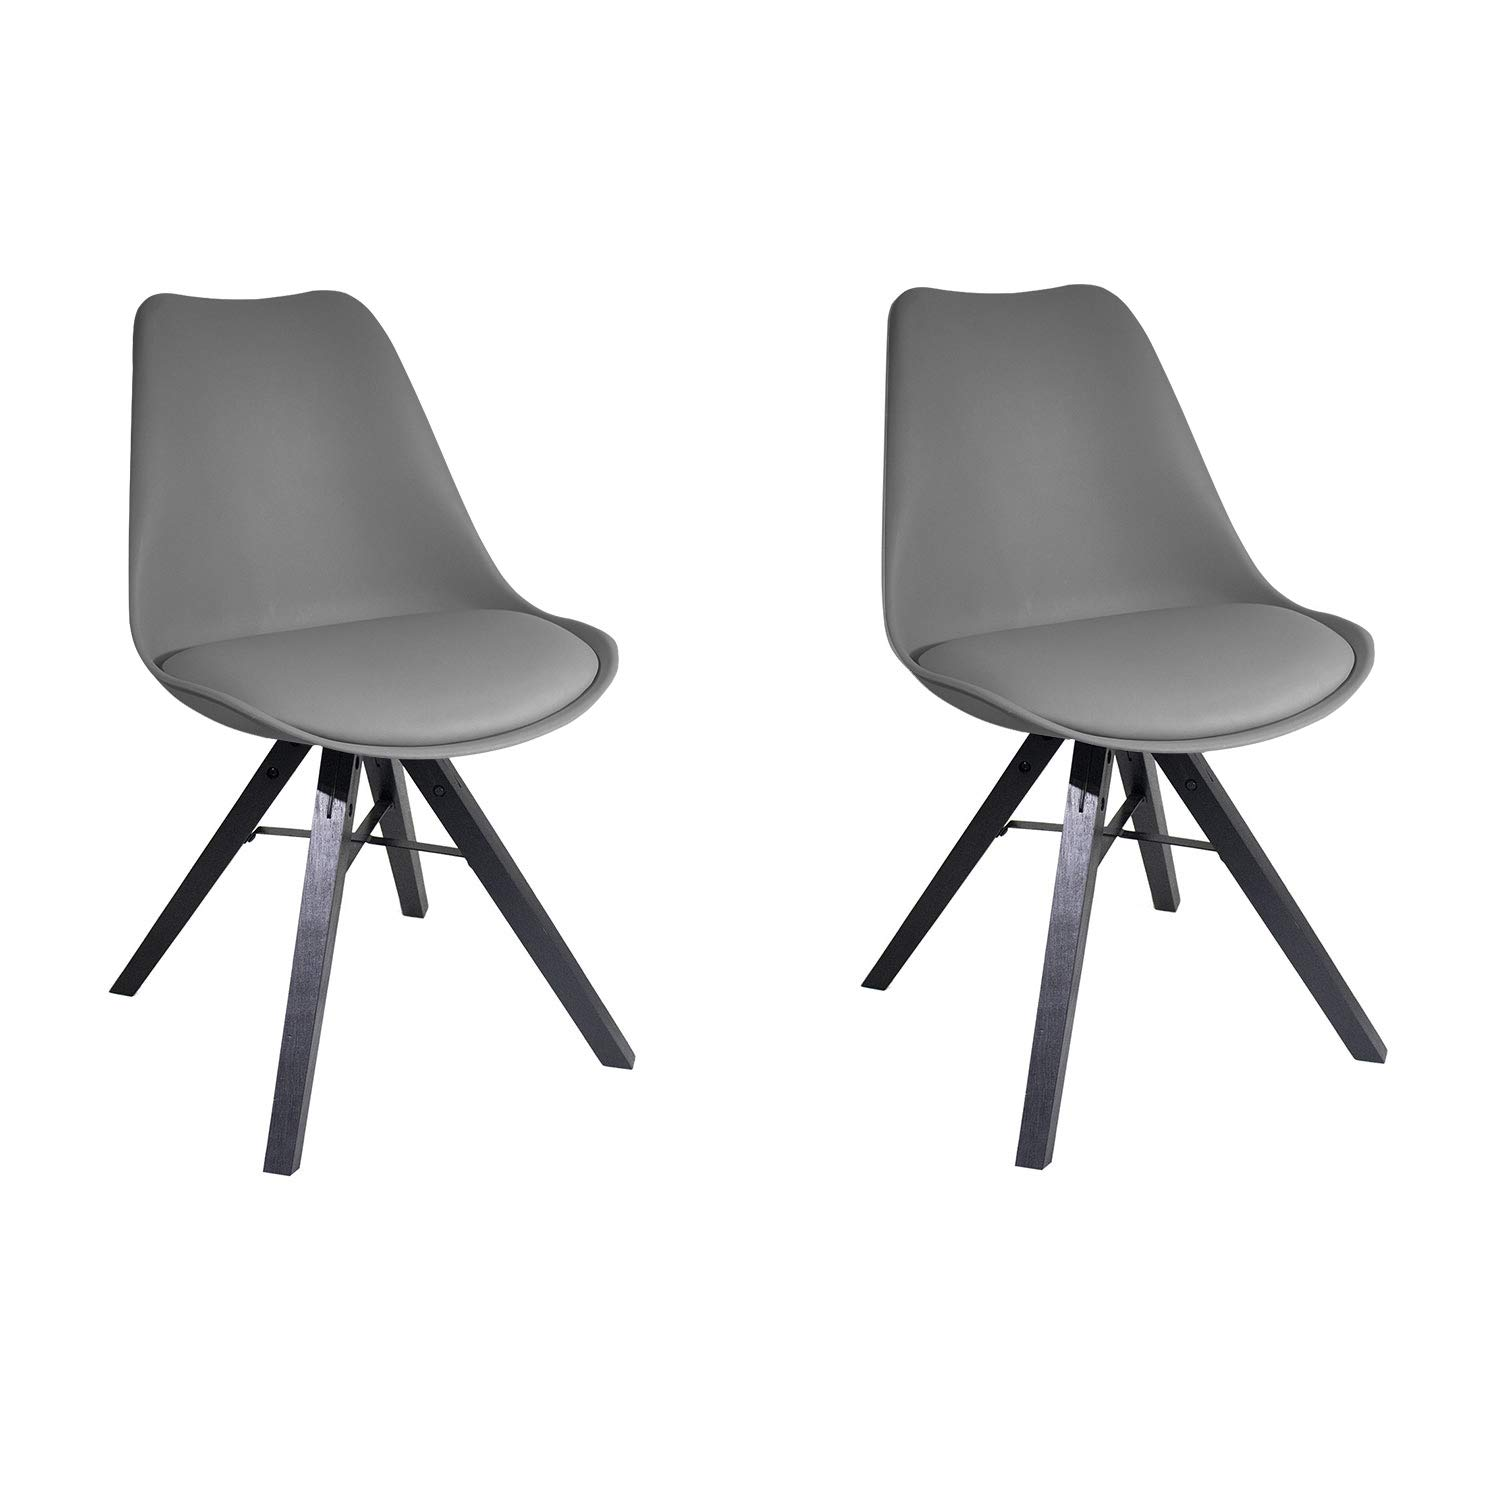 YUIKY Modern Dining Chair Set of 2 Padded Seat Natural Wood Legs Chair (Grey)